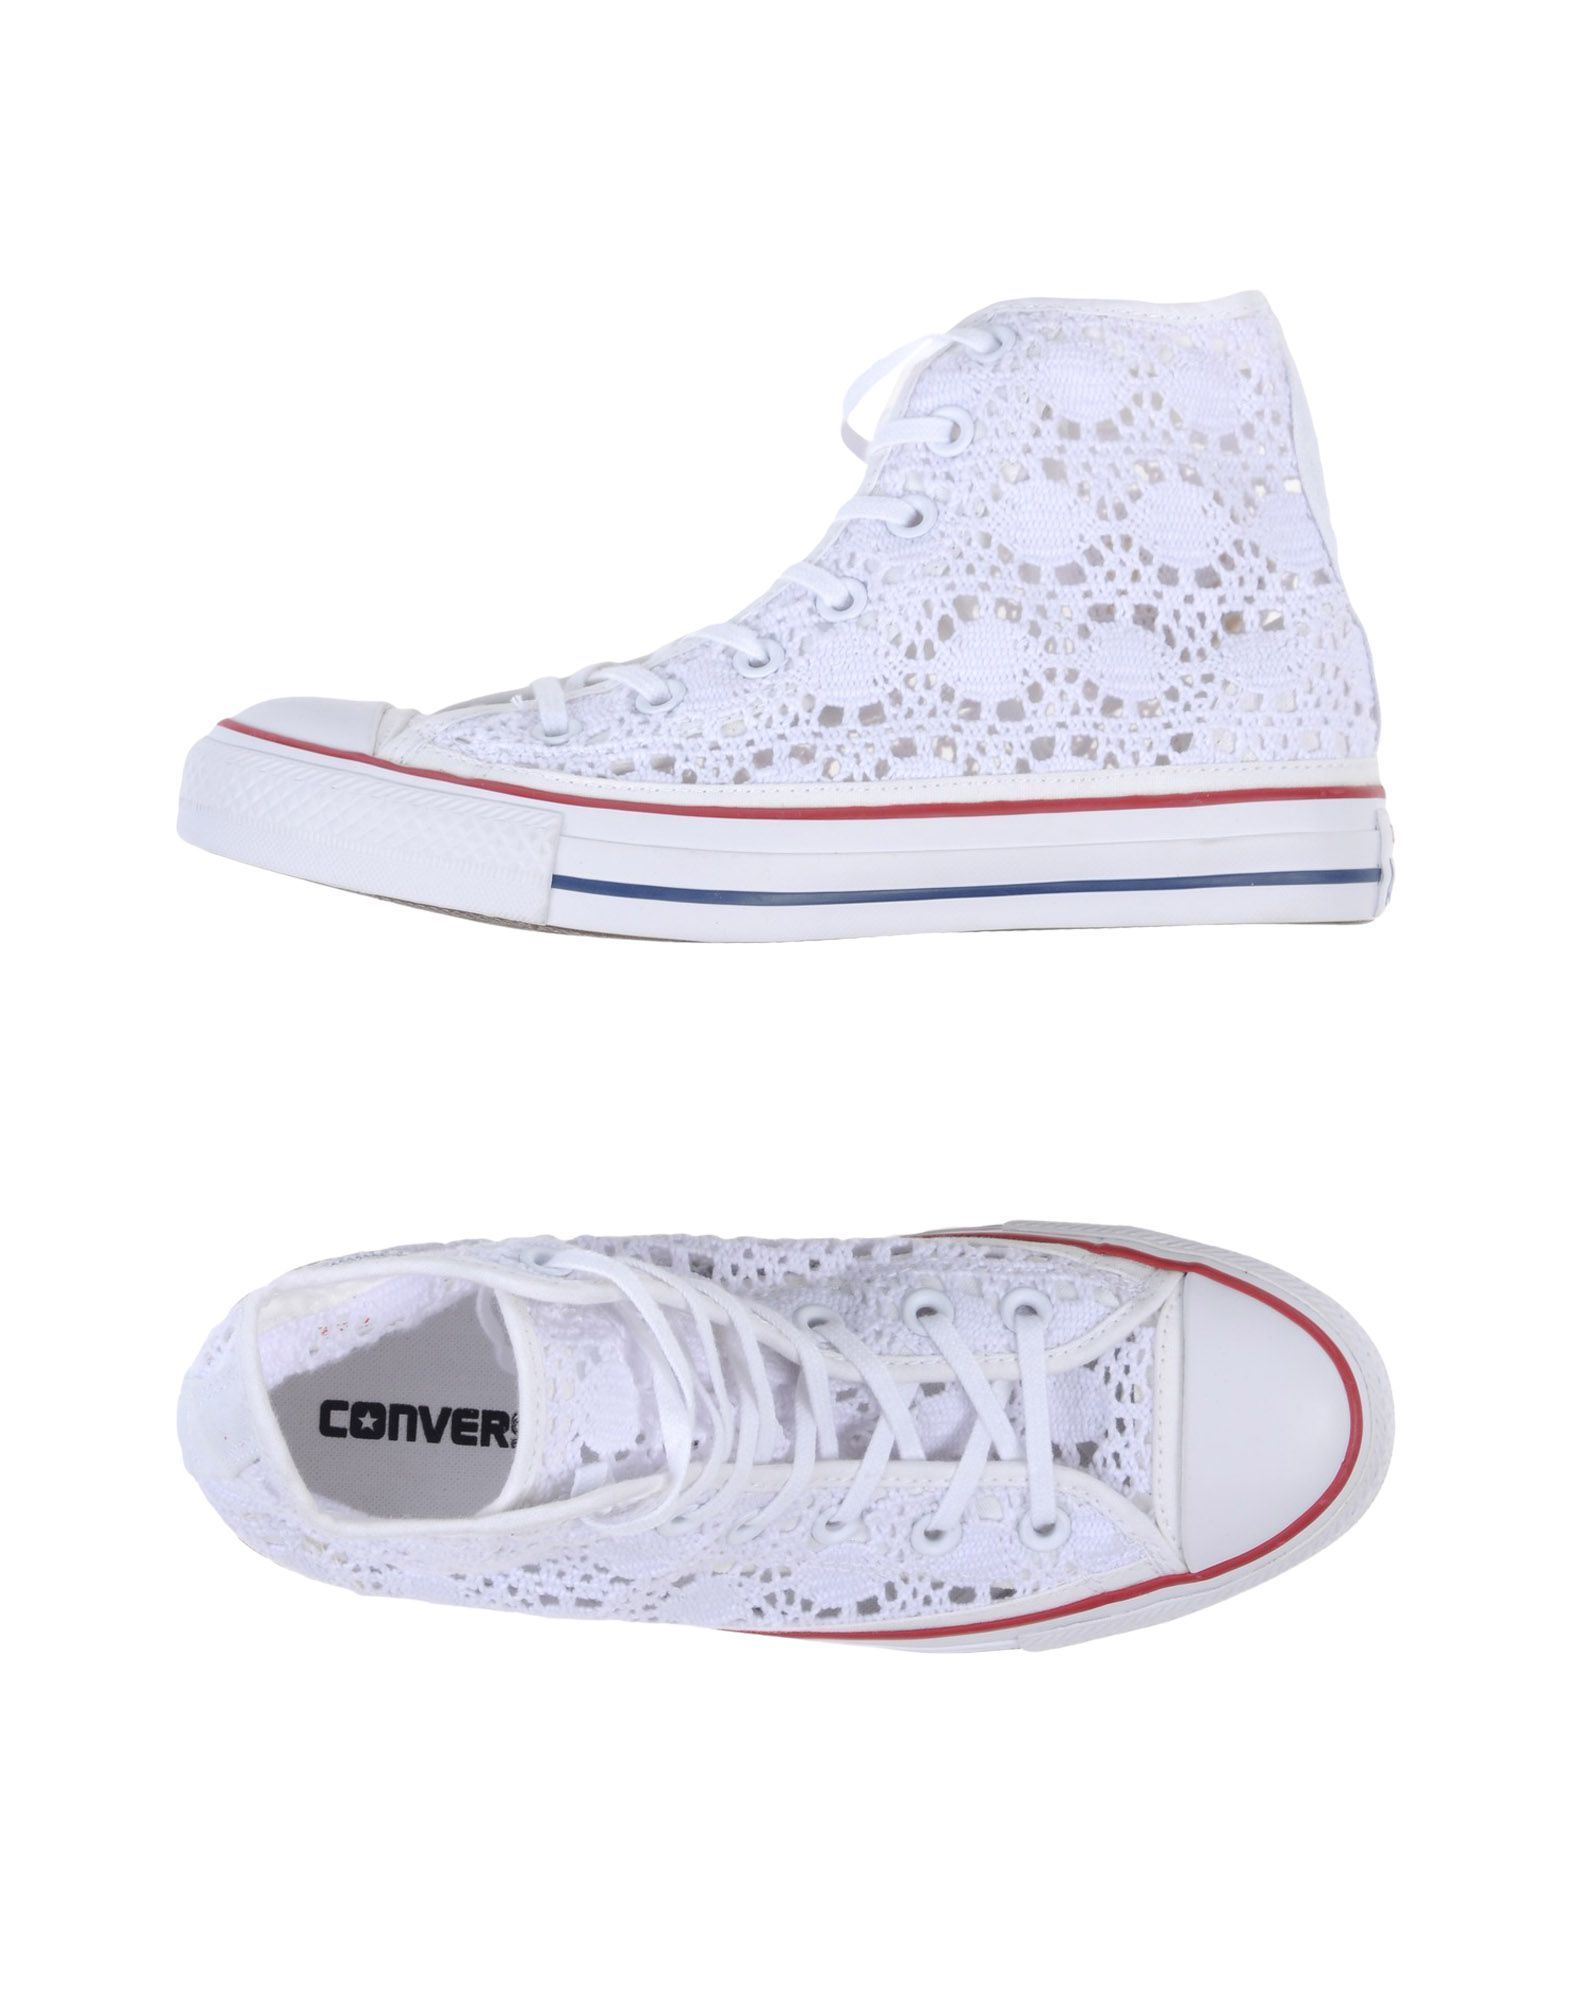 b4daf9344 9 Simple and Modern Tricks  Spring Work Shoes converse shoes  outfit.Louboutin Shoes Platform womens shoes autumn.Vans Shoes White.